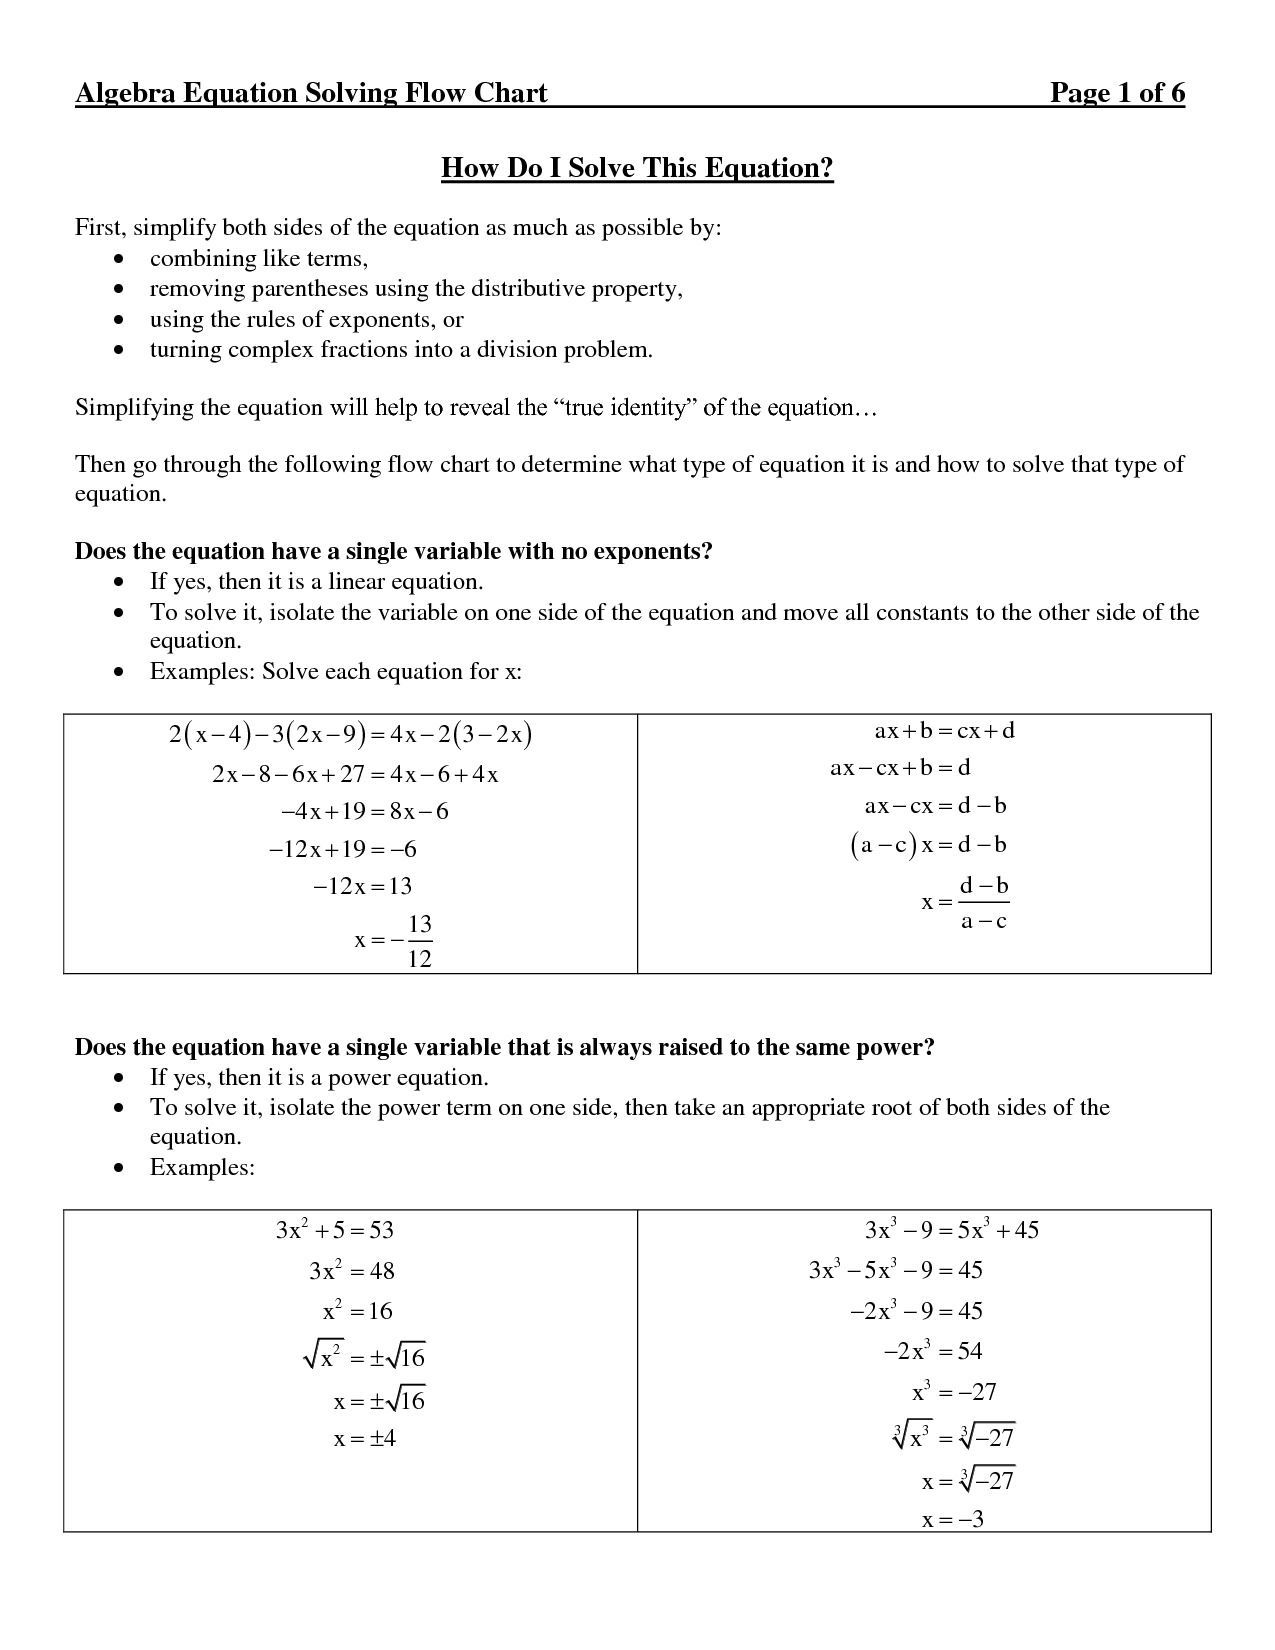 Math Equations Solve For X Math Equations In 2020 Math Flow Charts Algebra Equations Solving Equations